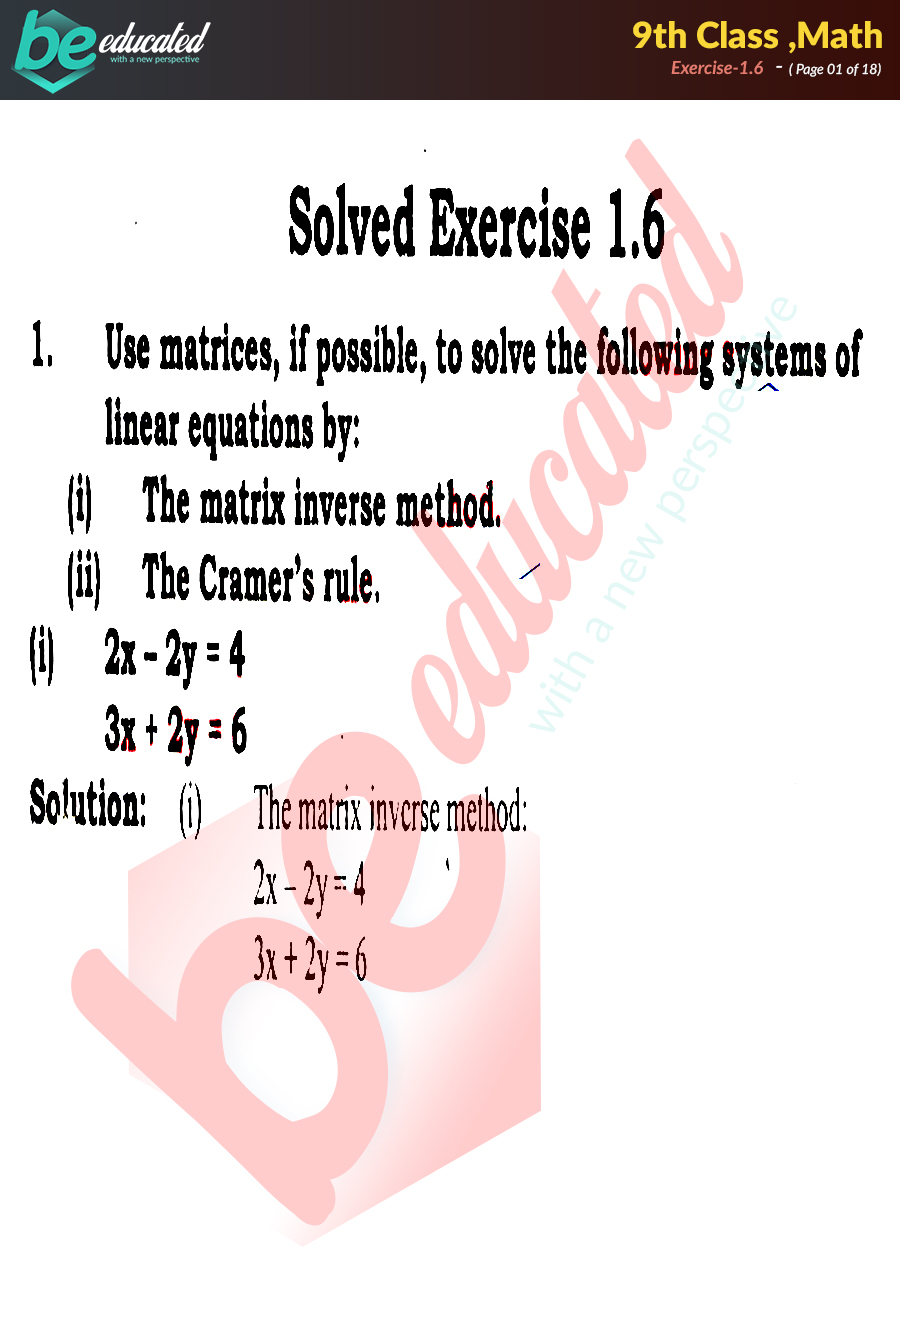 Exercise 1 6 Math 9th Class Notes - Matric Part 1 Notes